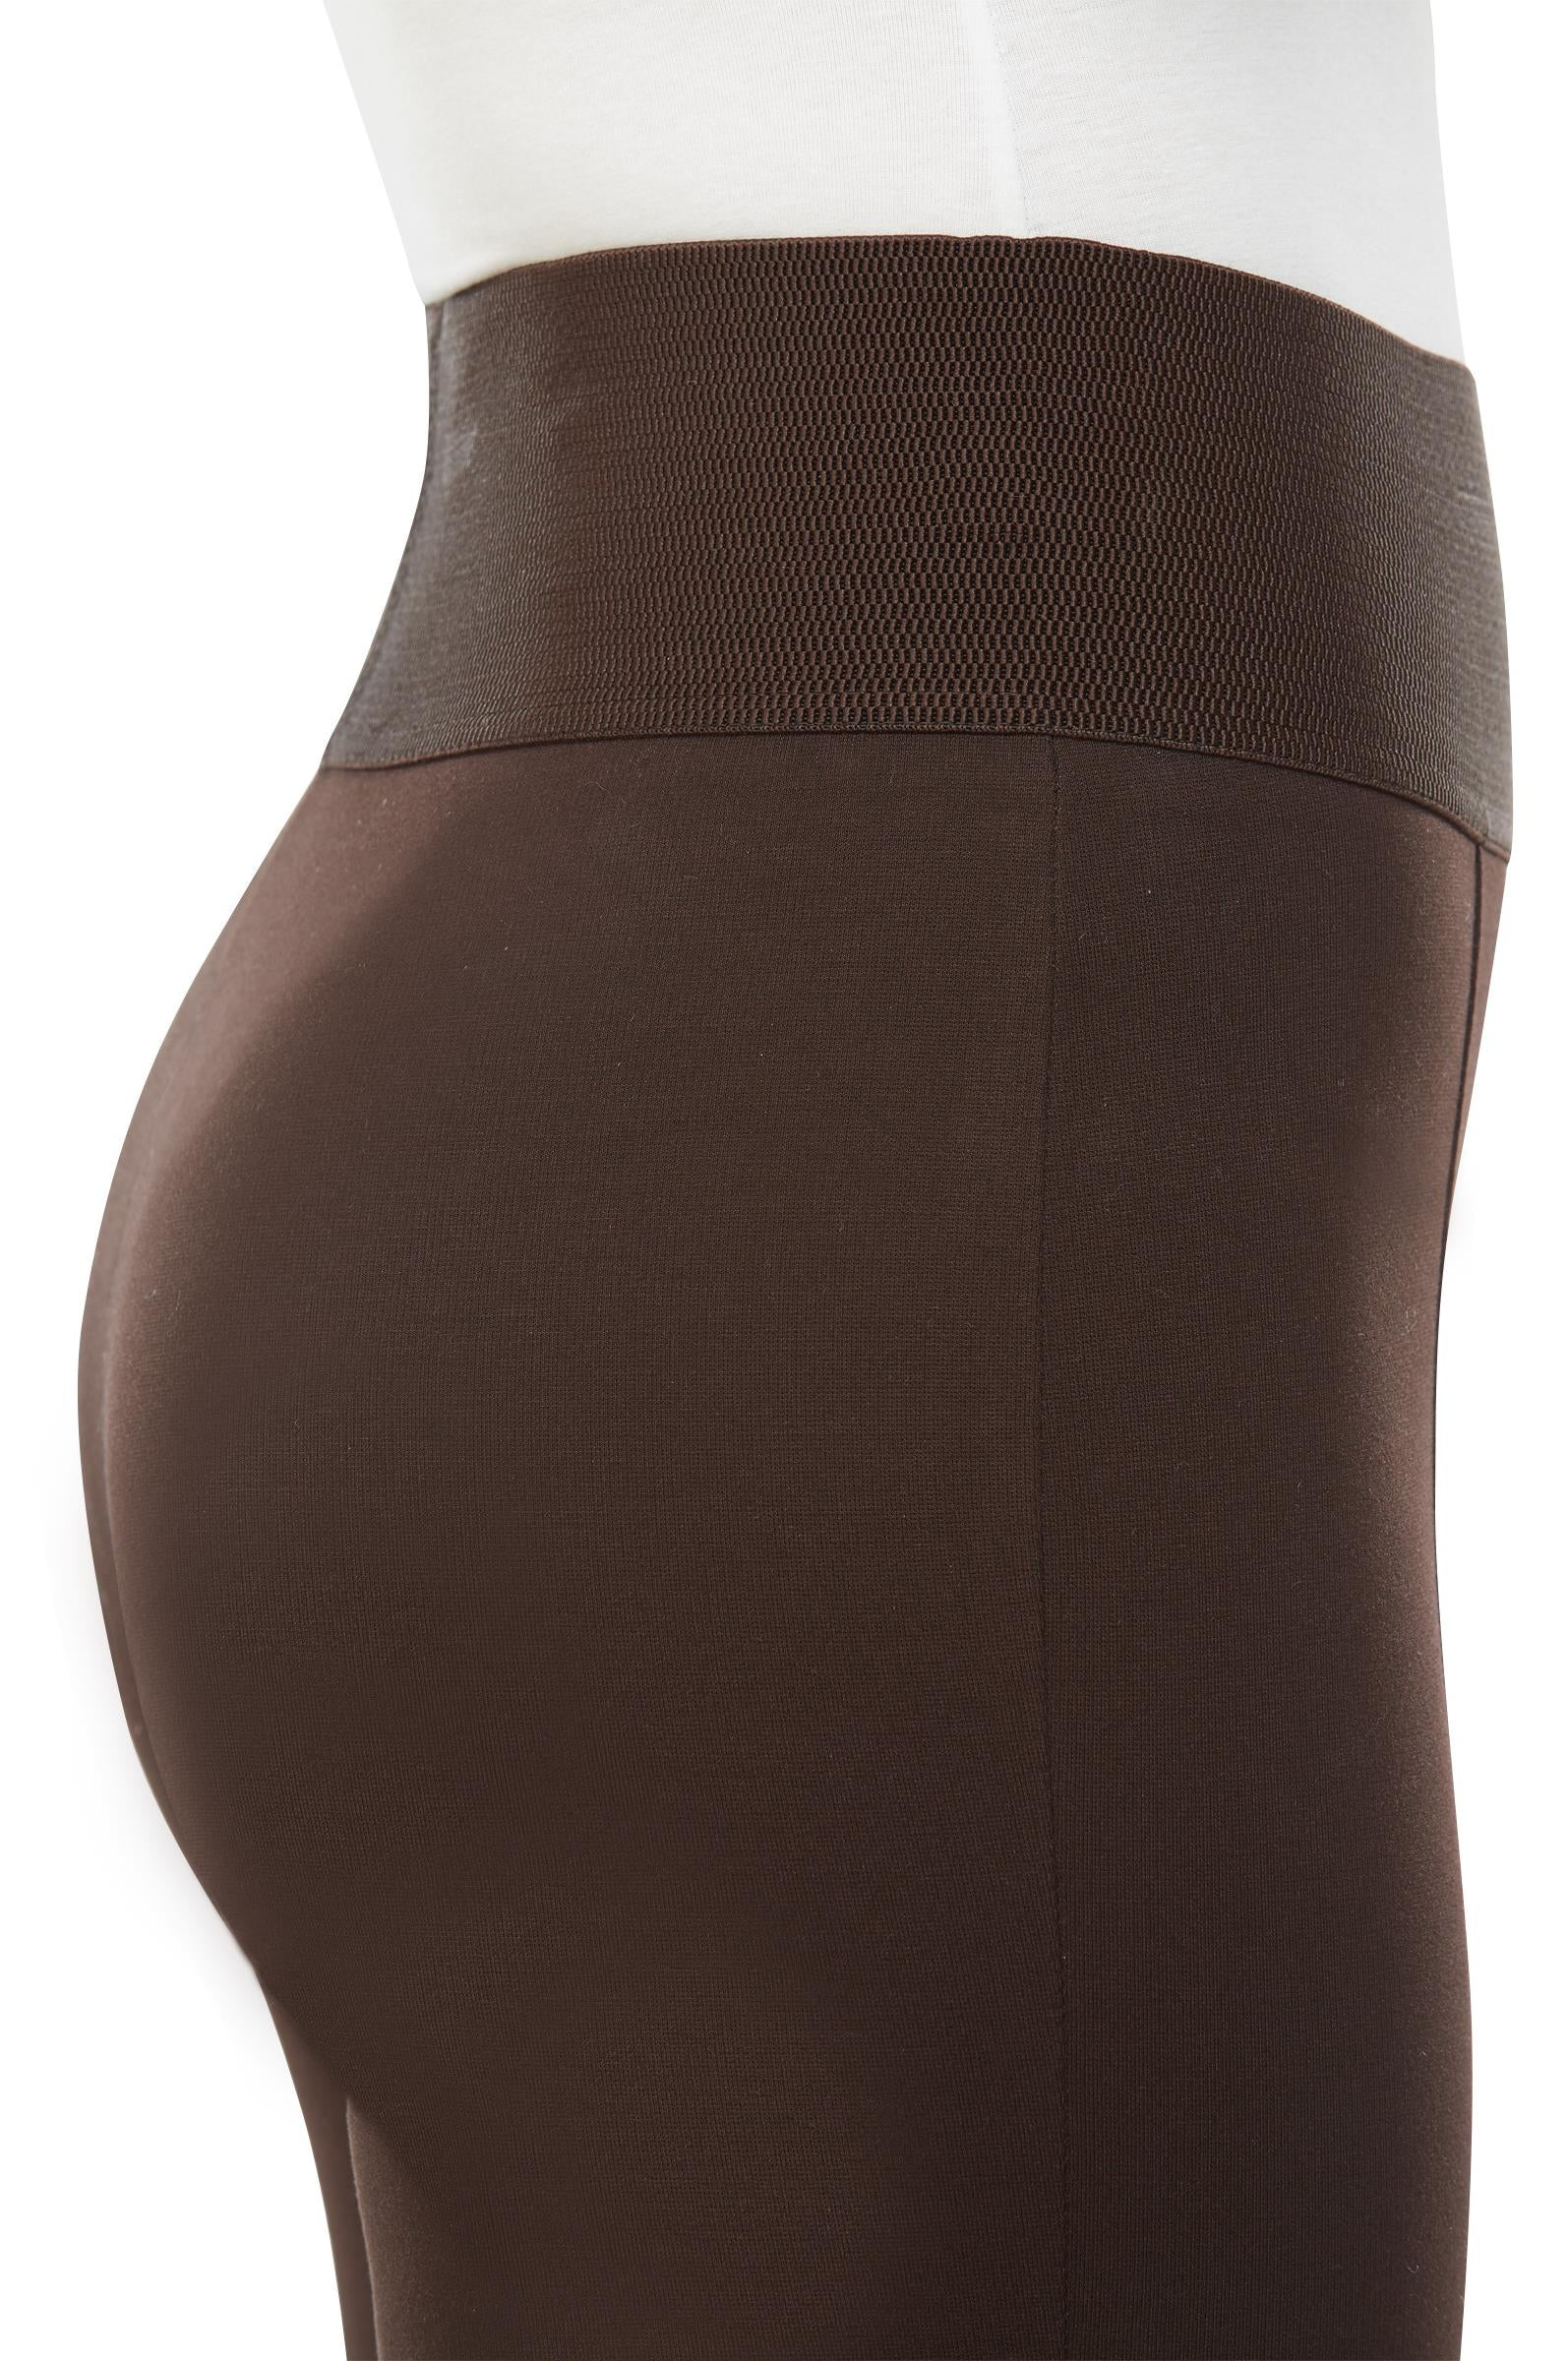 "Detail view woman wearing black leggings with wide 3.5"" waistband from Nygard Slims"